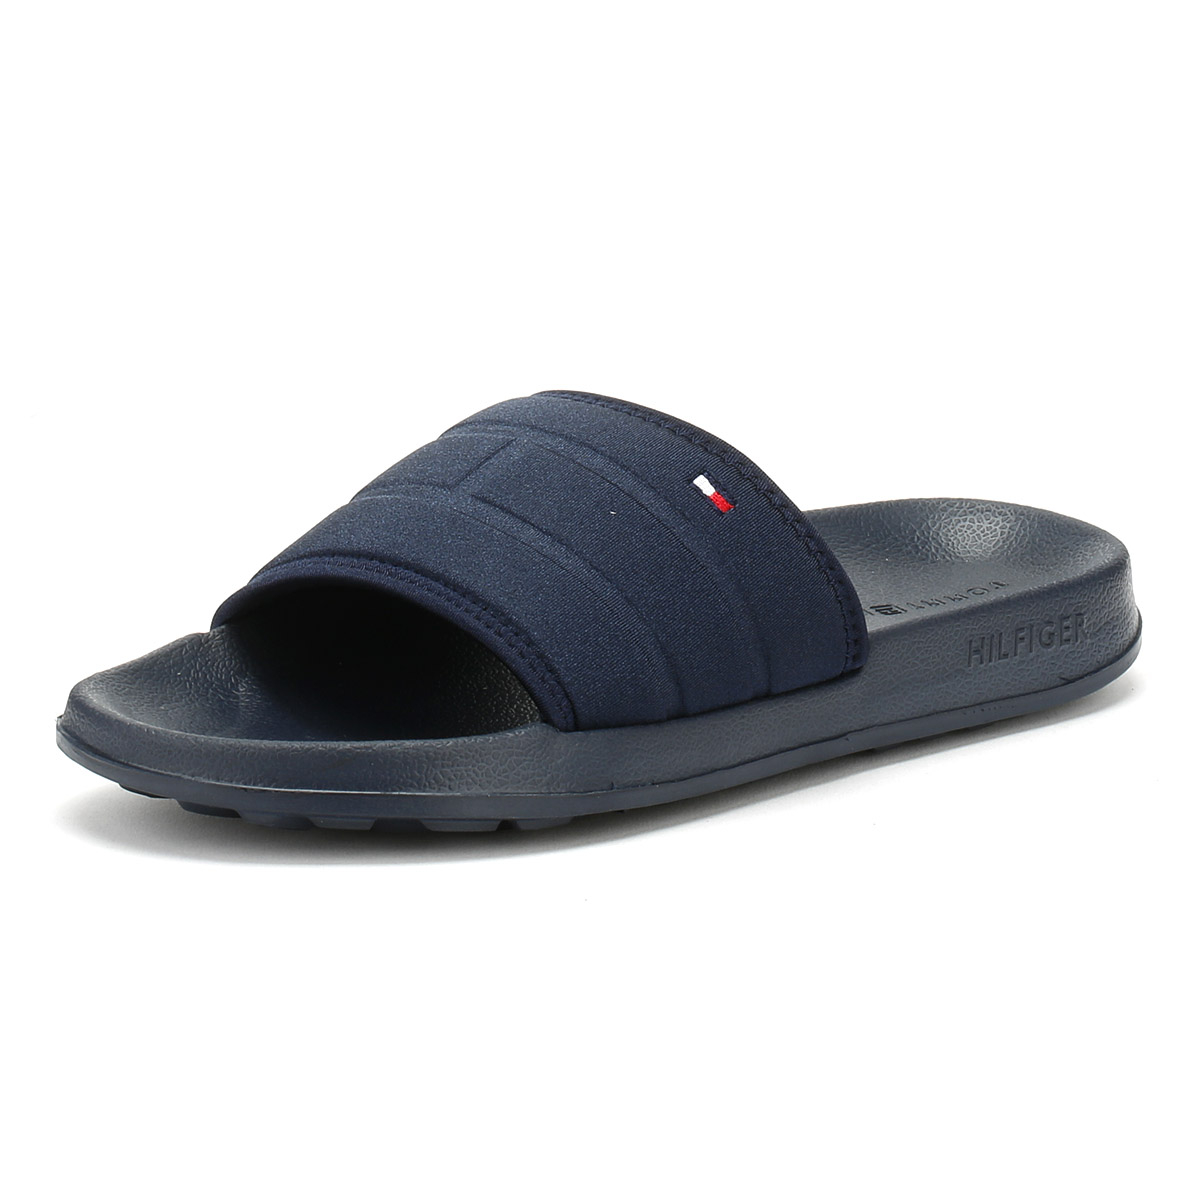 17fe7382e Details about Tommy Hilfiger Mens Slides Midnight Navy Flag Pool Sandals  Summer Beach Shoes